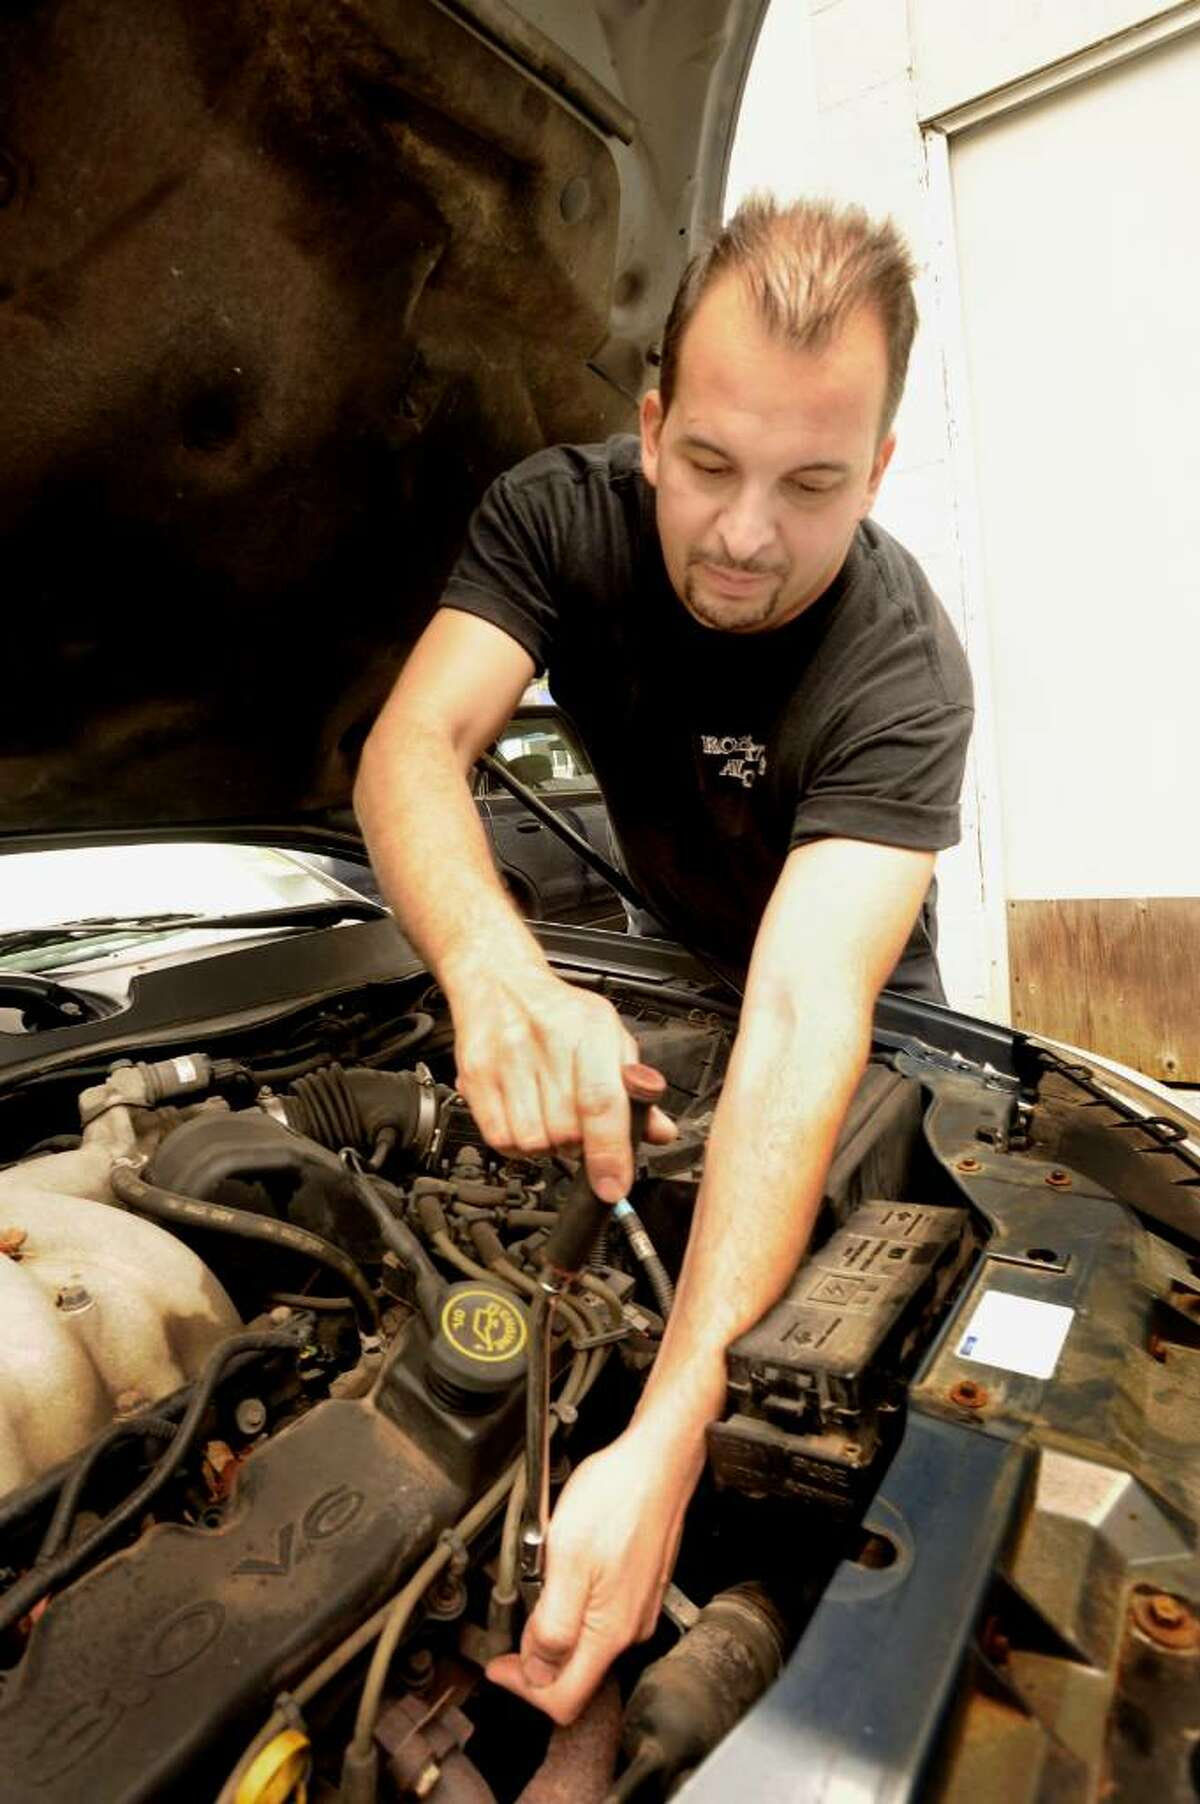 Robert Picqarelli Jr. works on an engine at his New Milford business, Robert's Auto, on Wednesday, Sept.16,2009.